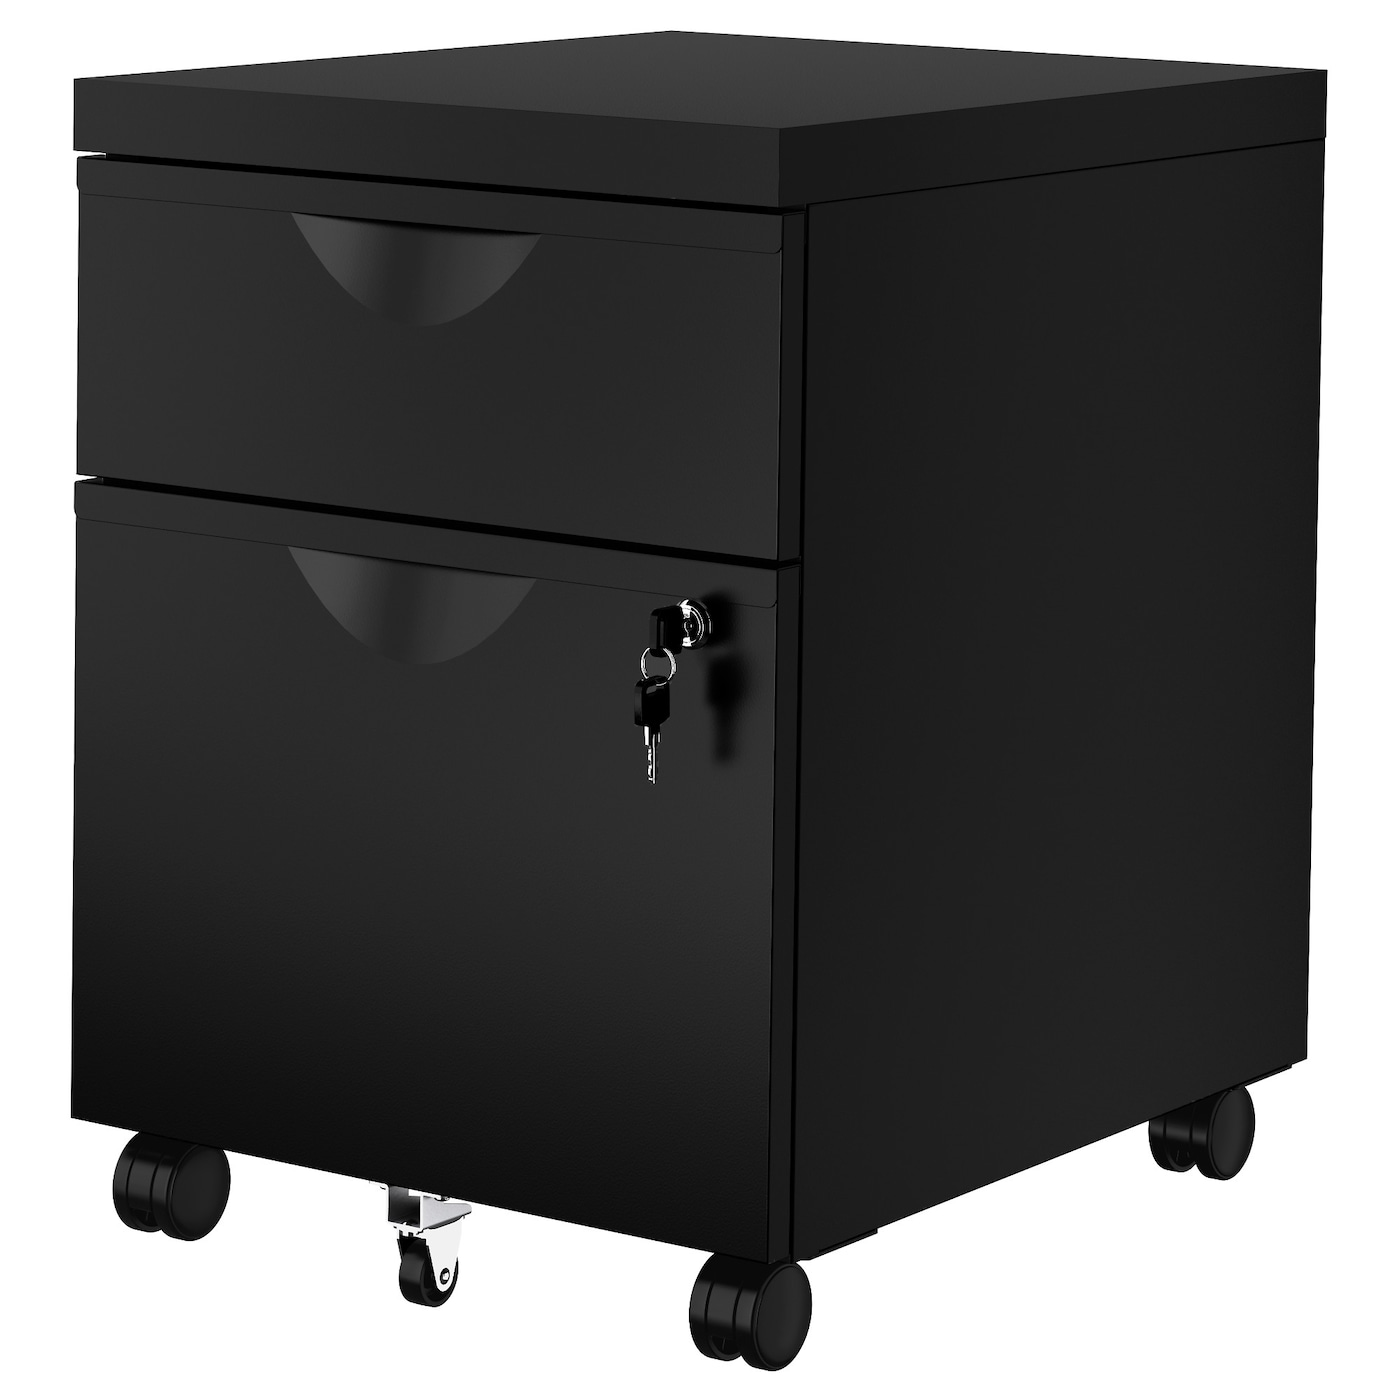 erik drawer unit w 2 drawers on castors black 41 x 57 cm ikea. Black Bedroom Furniture Sets. Home Design Ideas